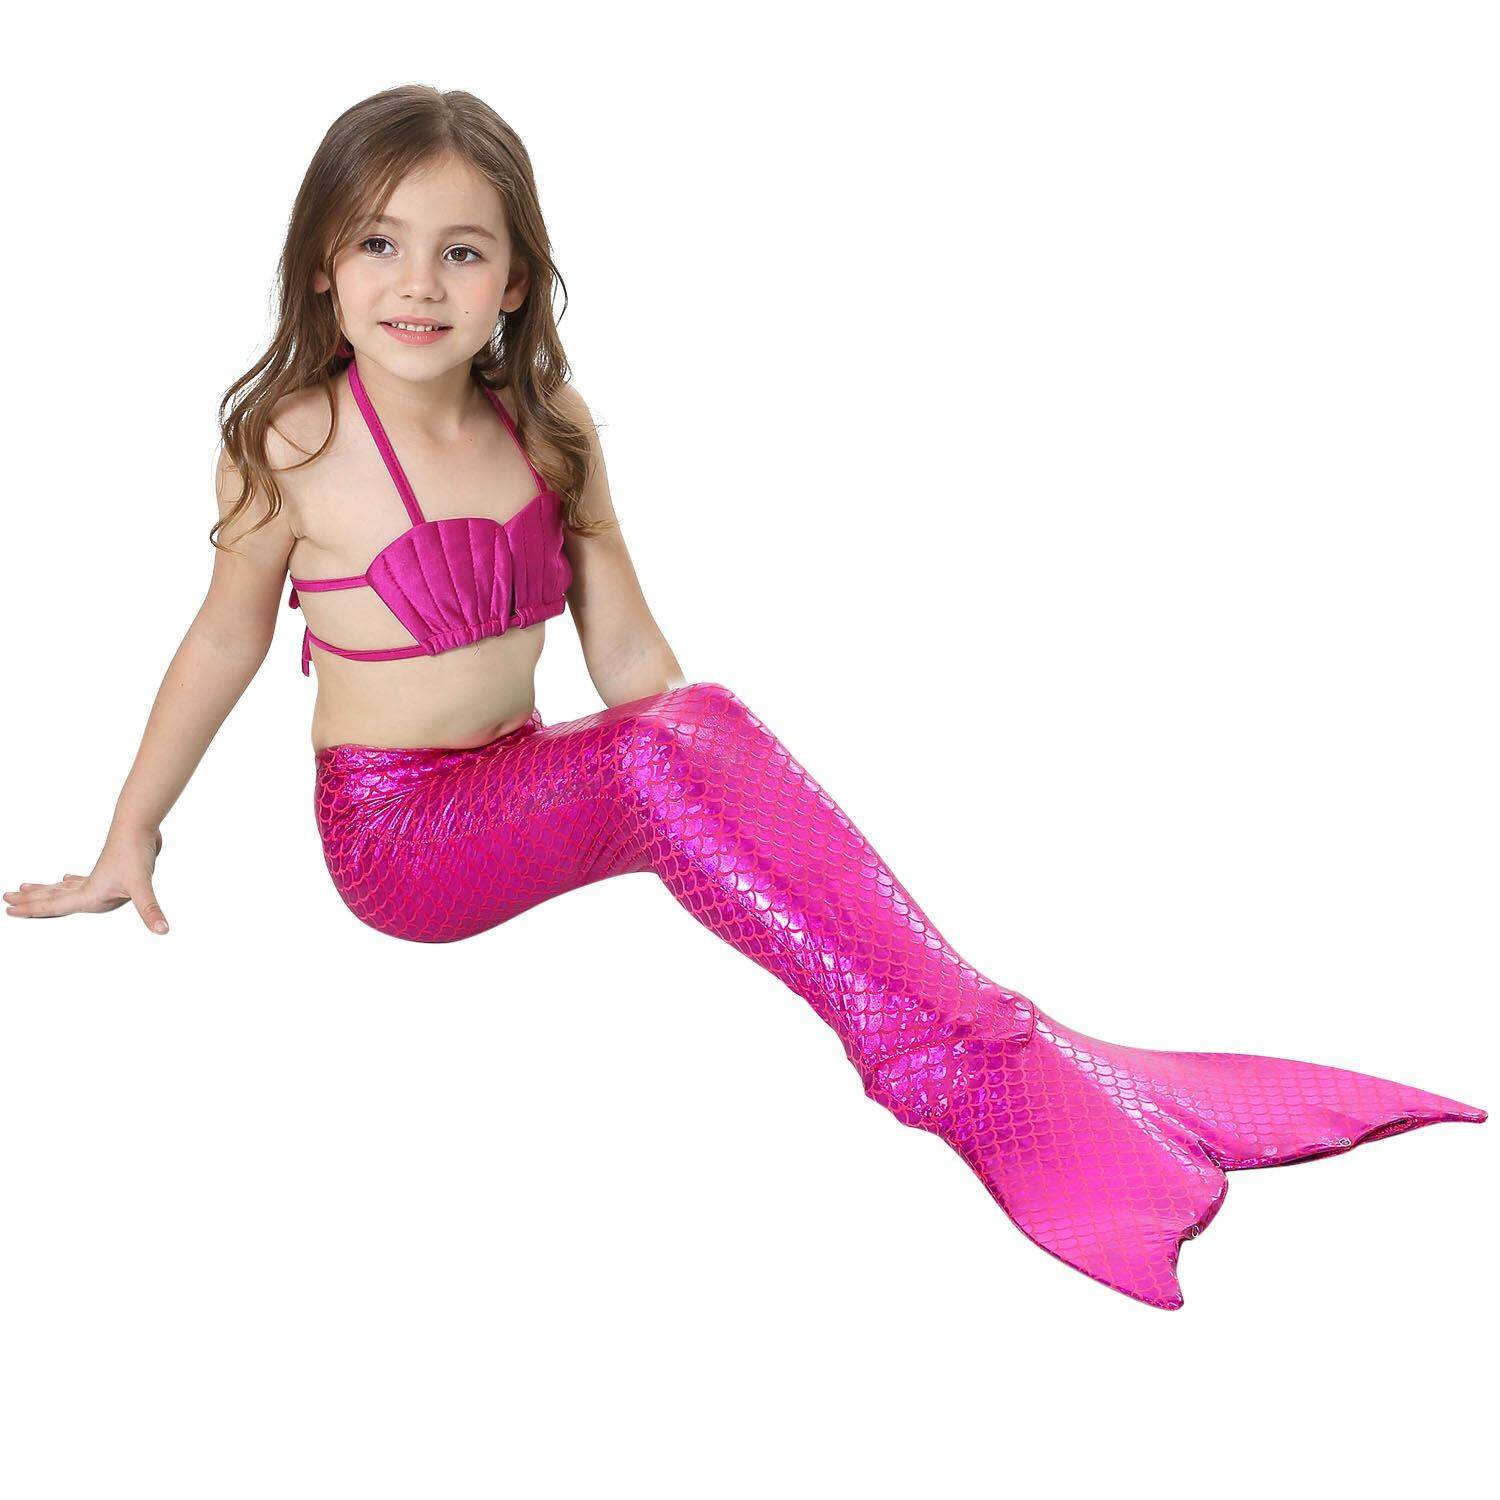 3db17cba36a90 JS 3-10Y Kids Mermaid Cosplay Swimwear Suit Girls Little Mermaid Tails  Children Swimsuit Bikini